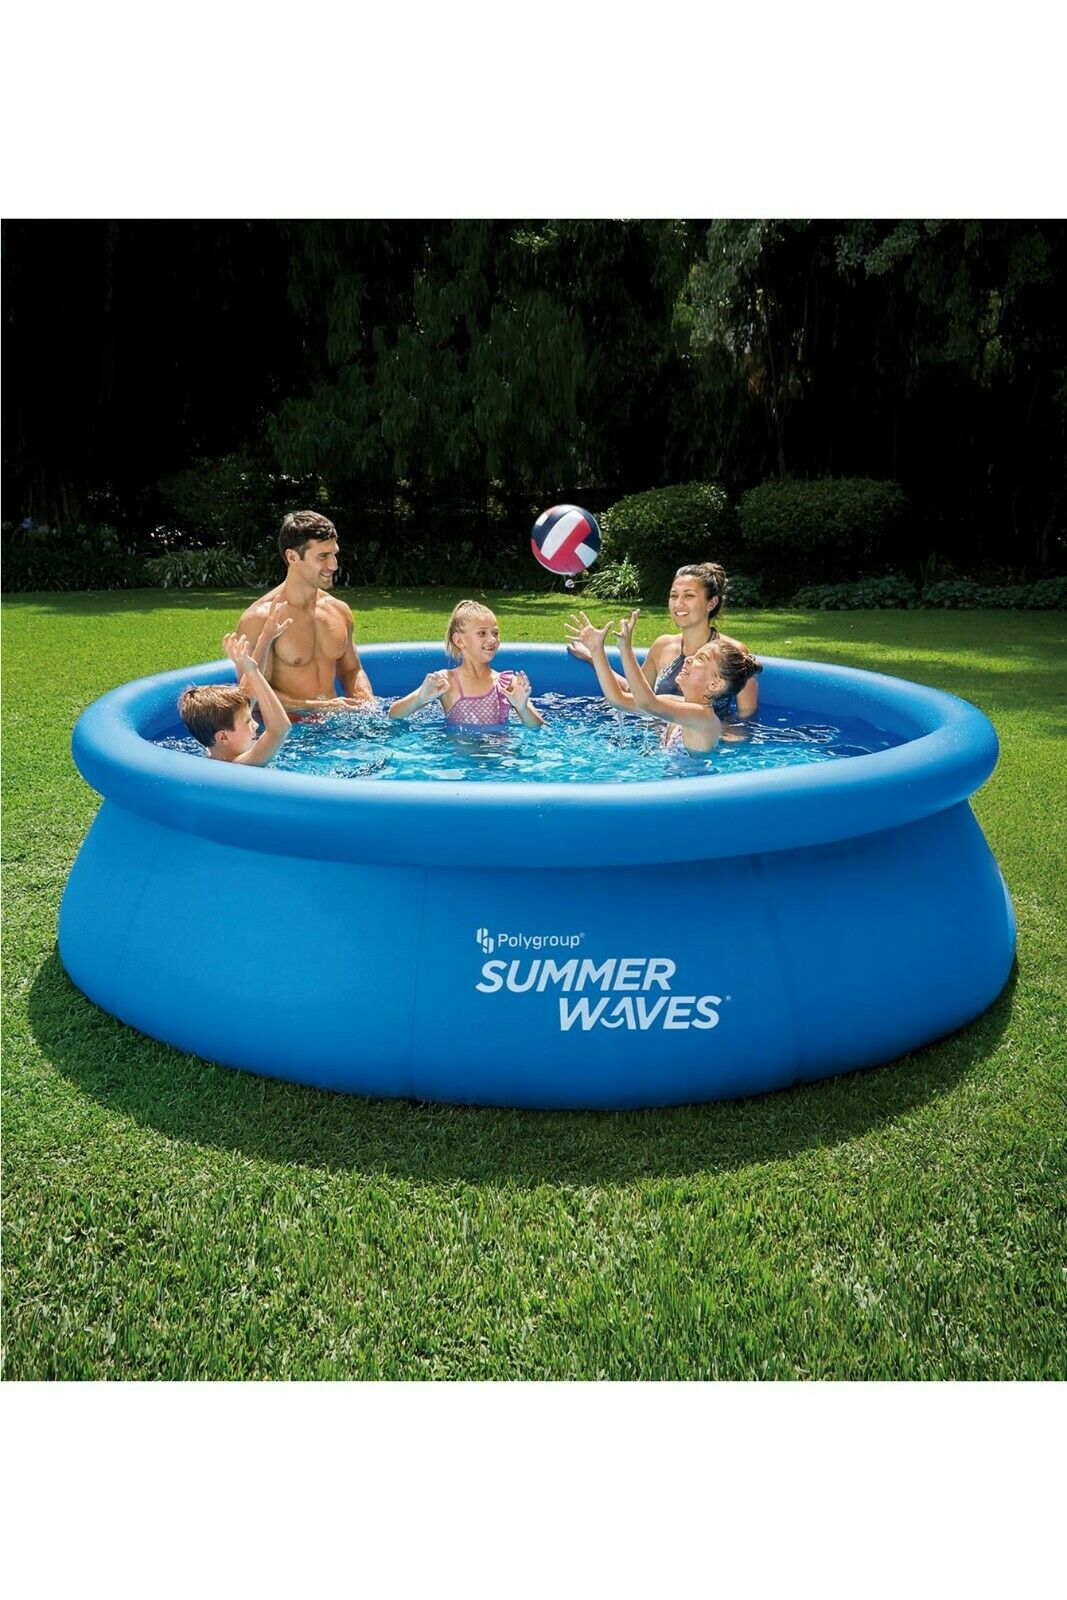 Summer Waves 10ft Quick Set Ring Pool Brand New - Collection from Bagshot